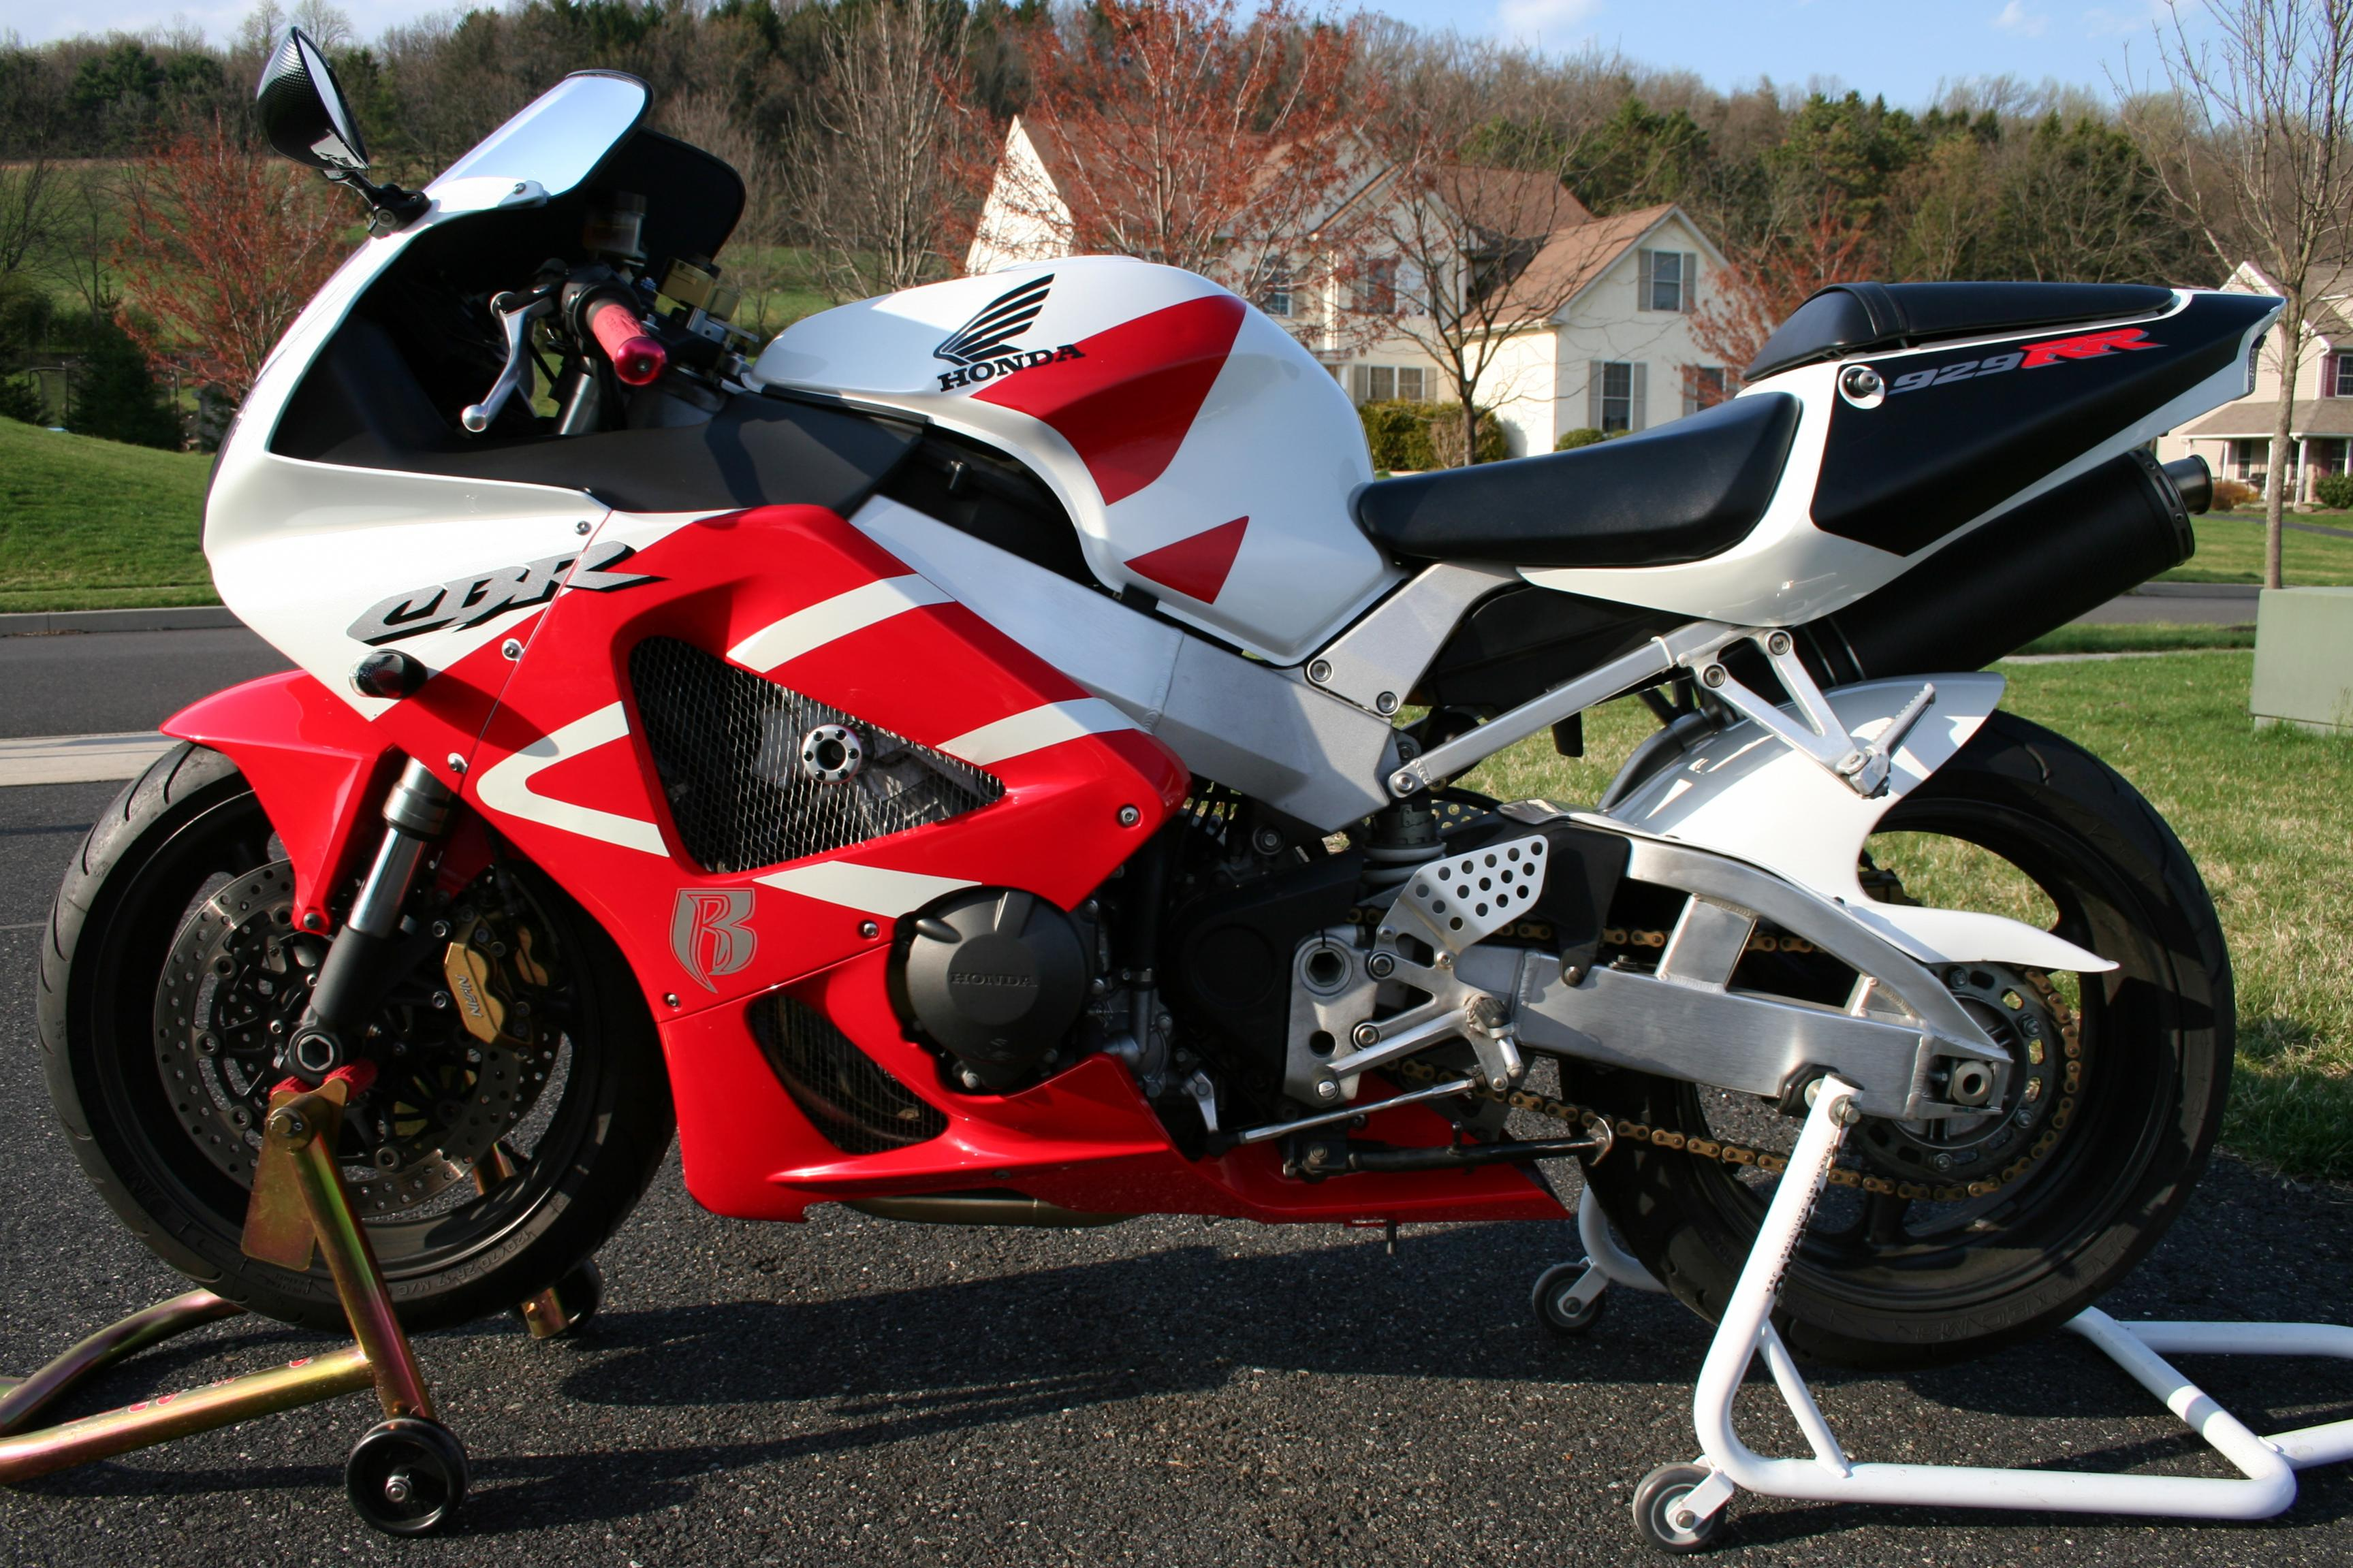 SOLD - 2000 Honda CBR 929 RR with stands - Sportbikes.net